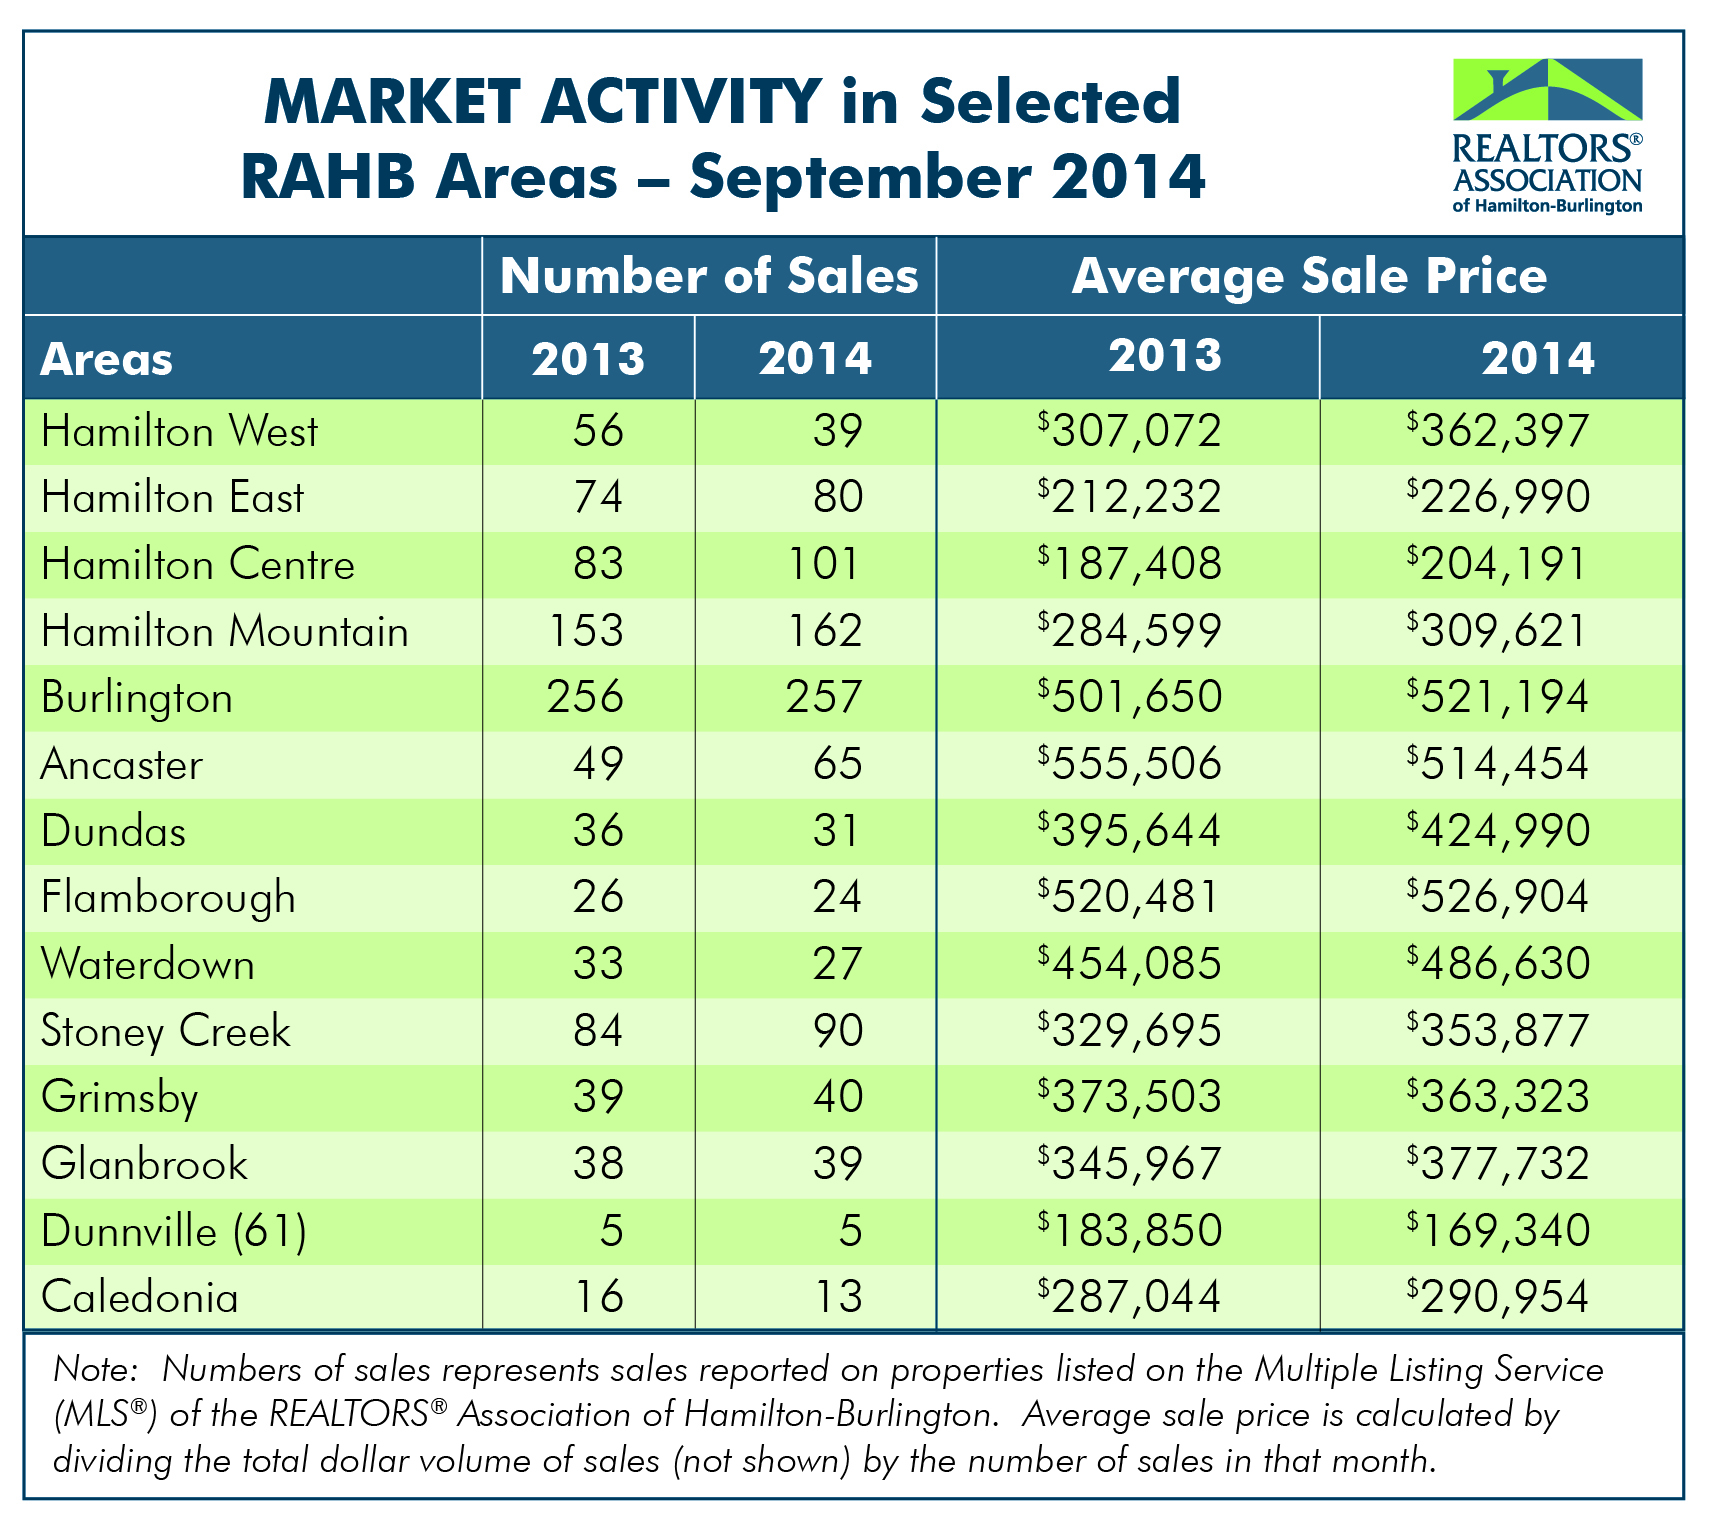 RAHB Market Activity for Sept